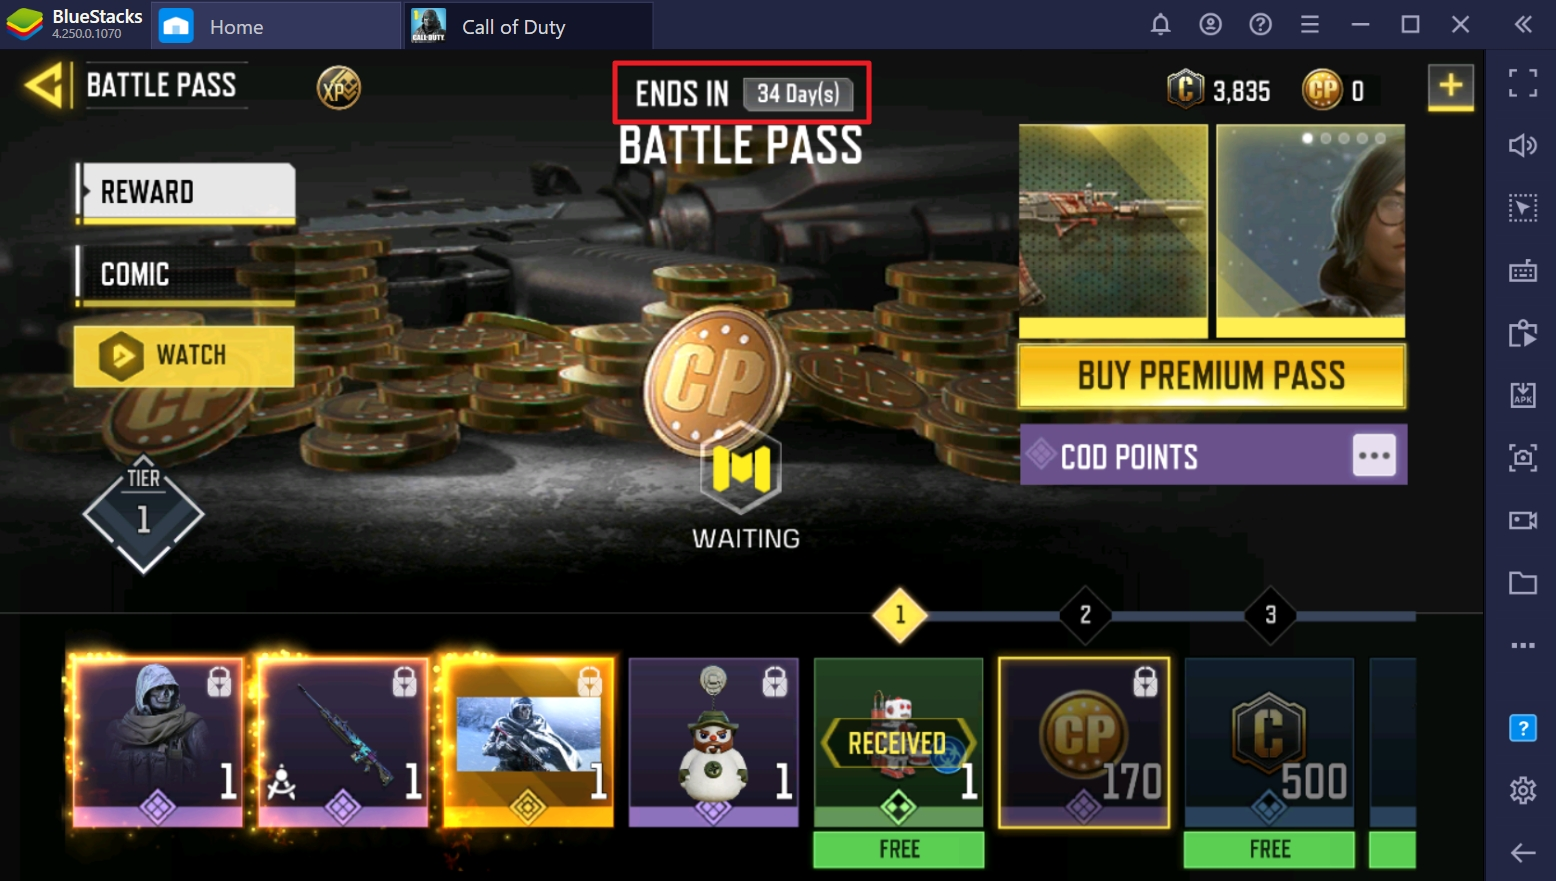 Leaks Suggest that a New 'Rebirth' Map Might Be Coming in Call of Duty: Mobile in Season 14